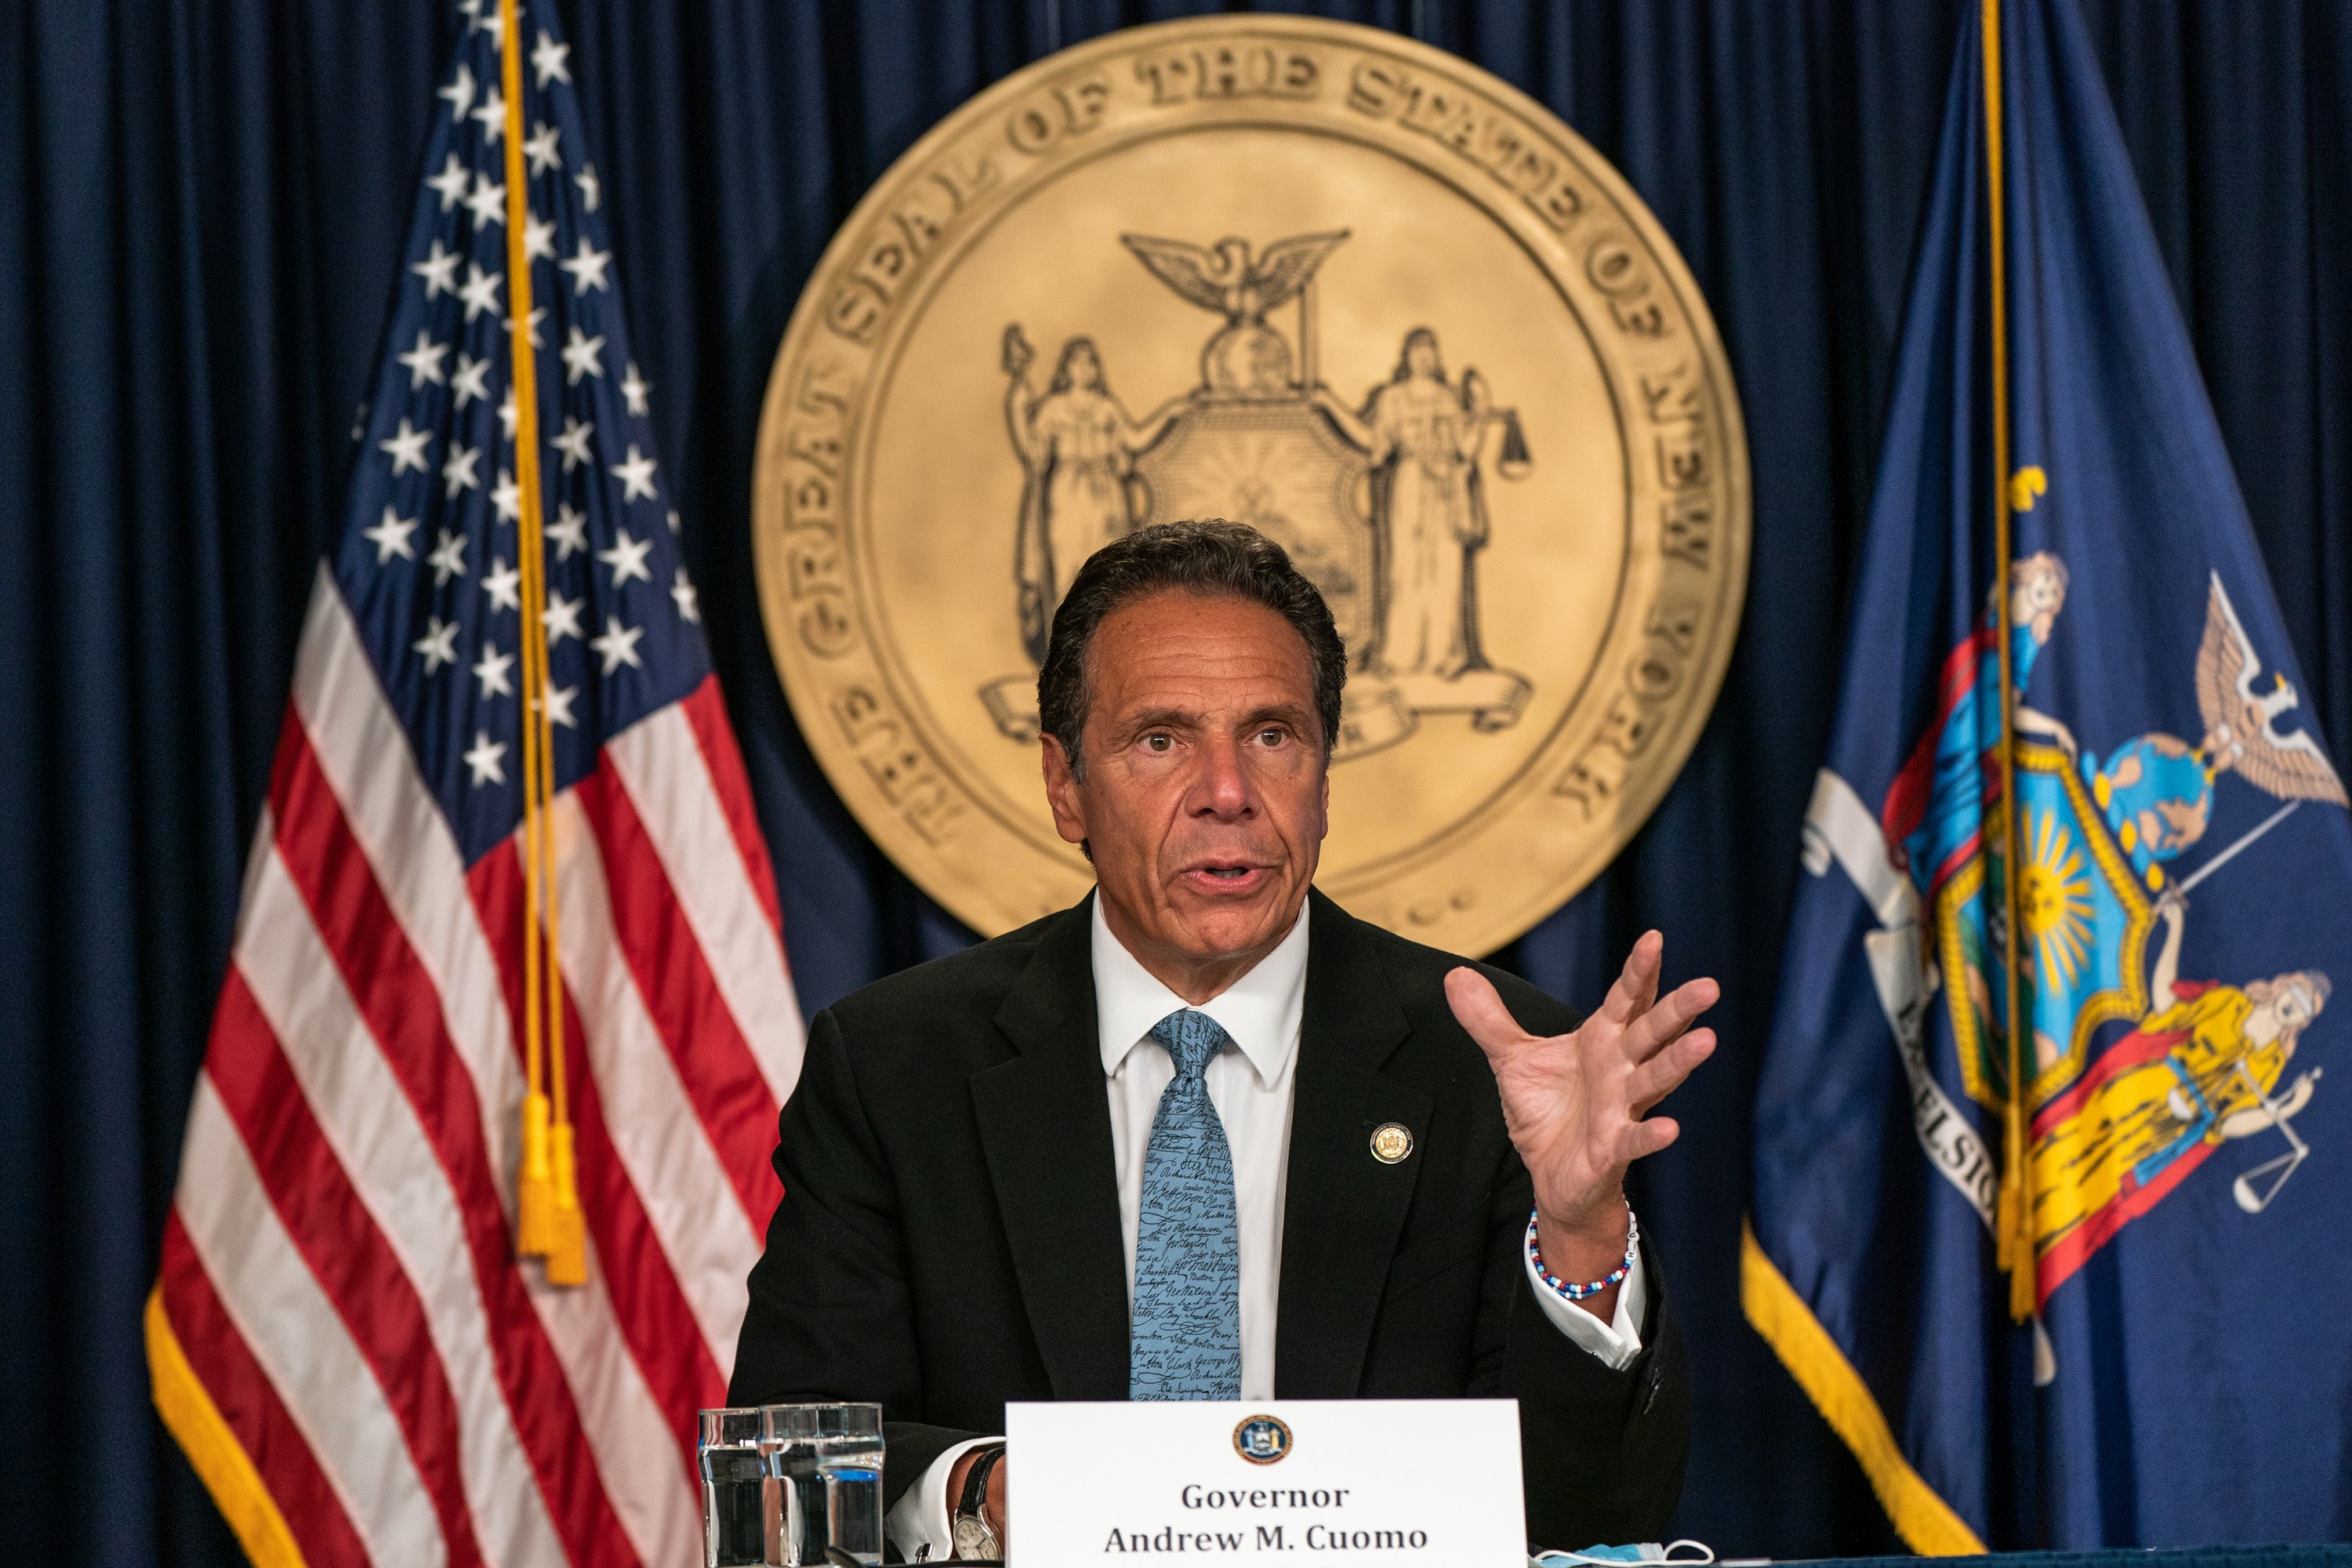 All New York schools are cleared to reopen for in-person classes, Cuomo says